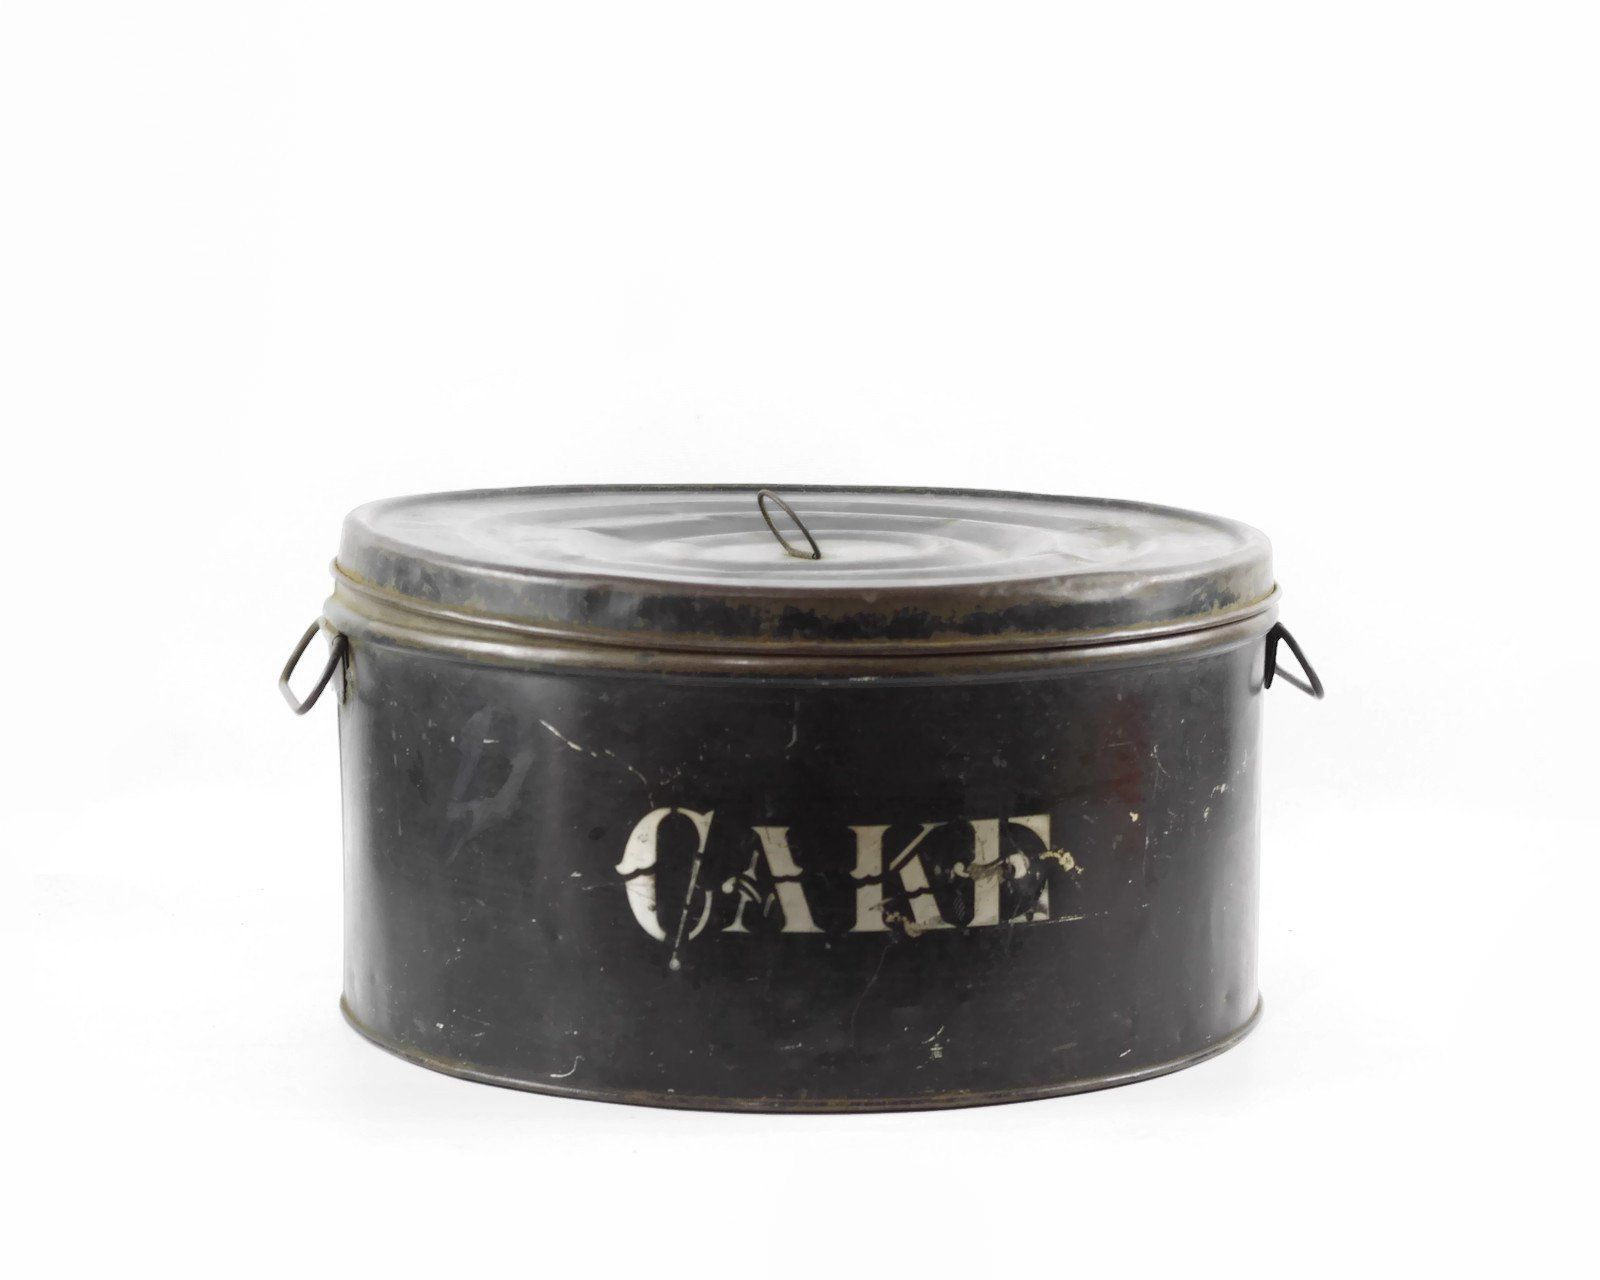 Antique Cake Tin With Lid Farmhouse Kitchen Decor Round Tin Storage Container By Gizmoandhooh Vintage Farmhouse Decor Farmhouse Kitchen Decor Farmhouse Decor